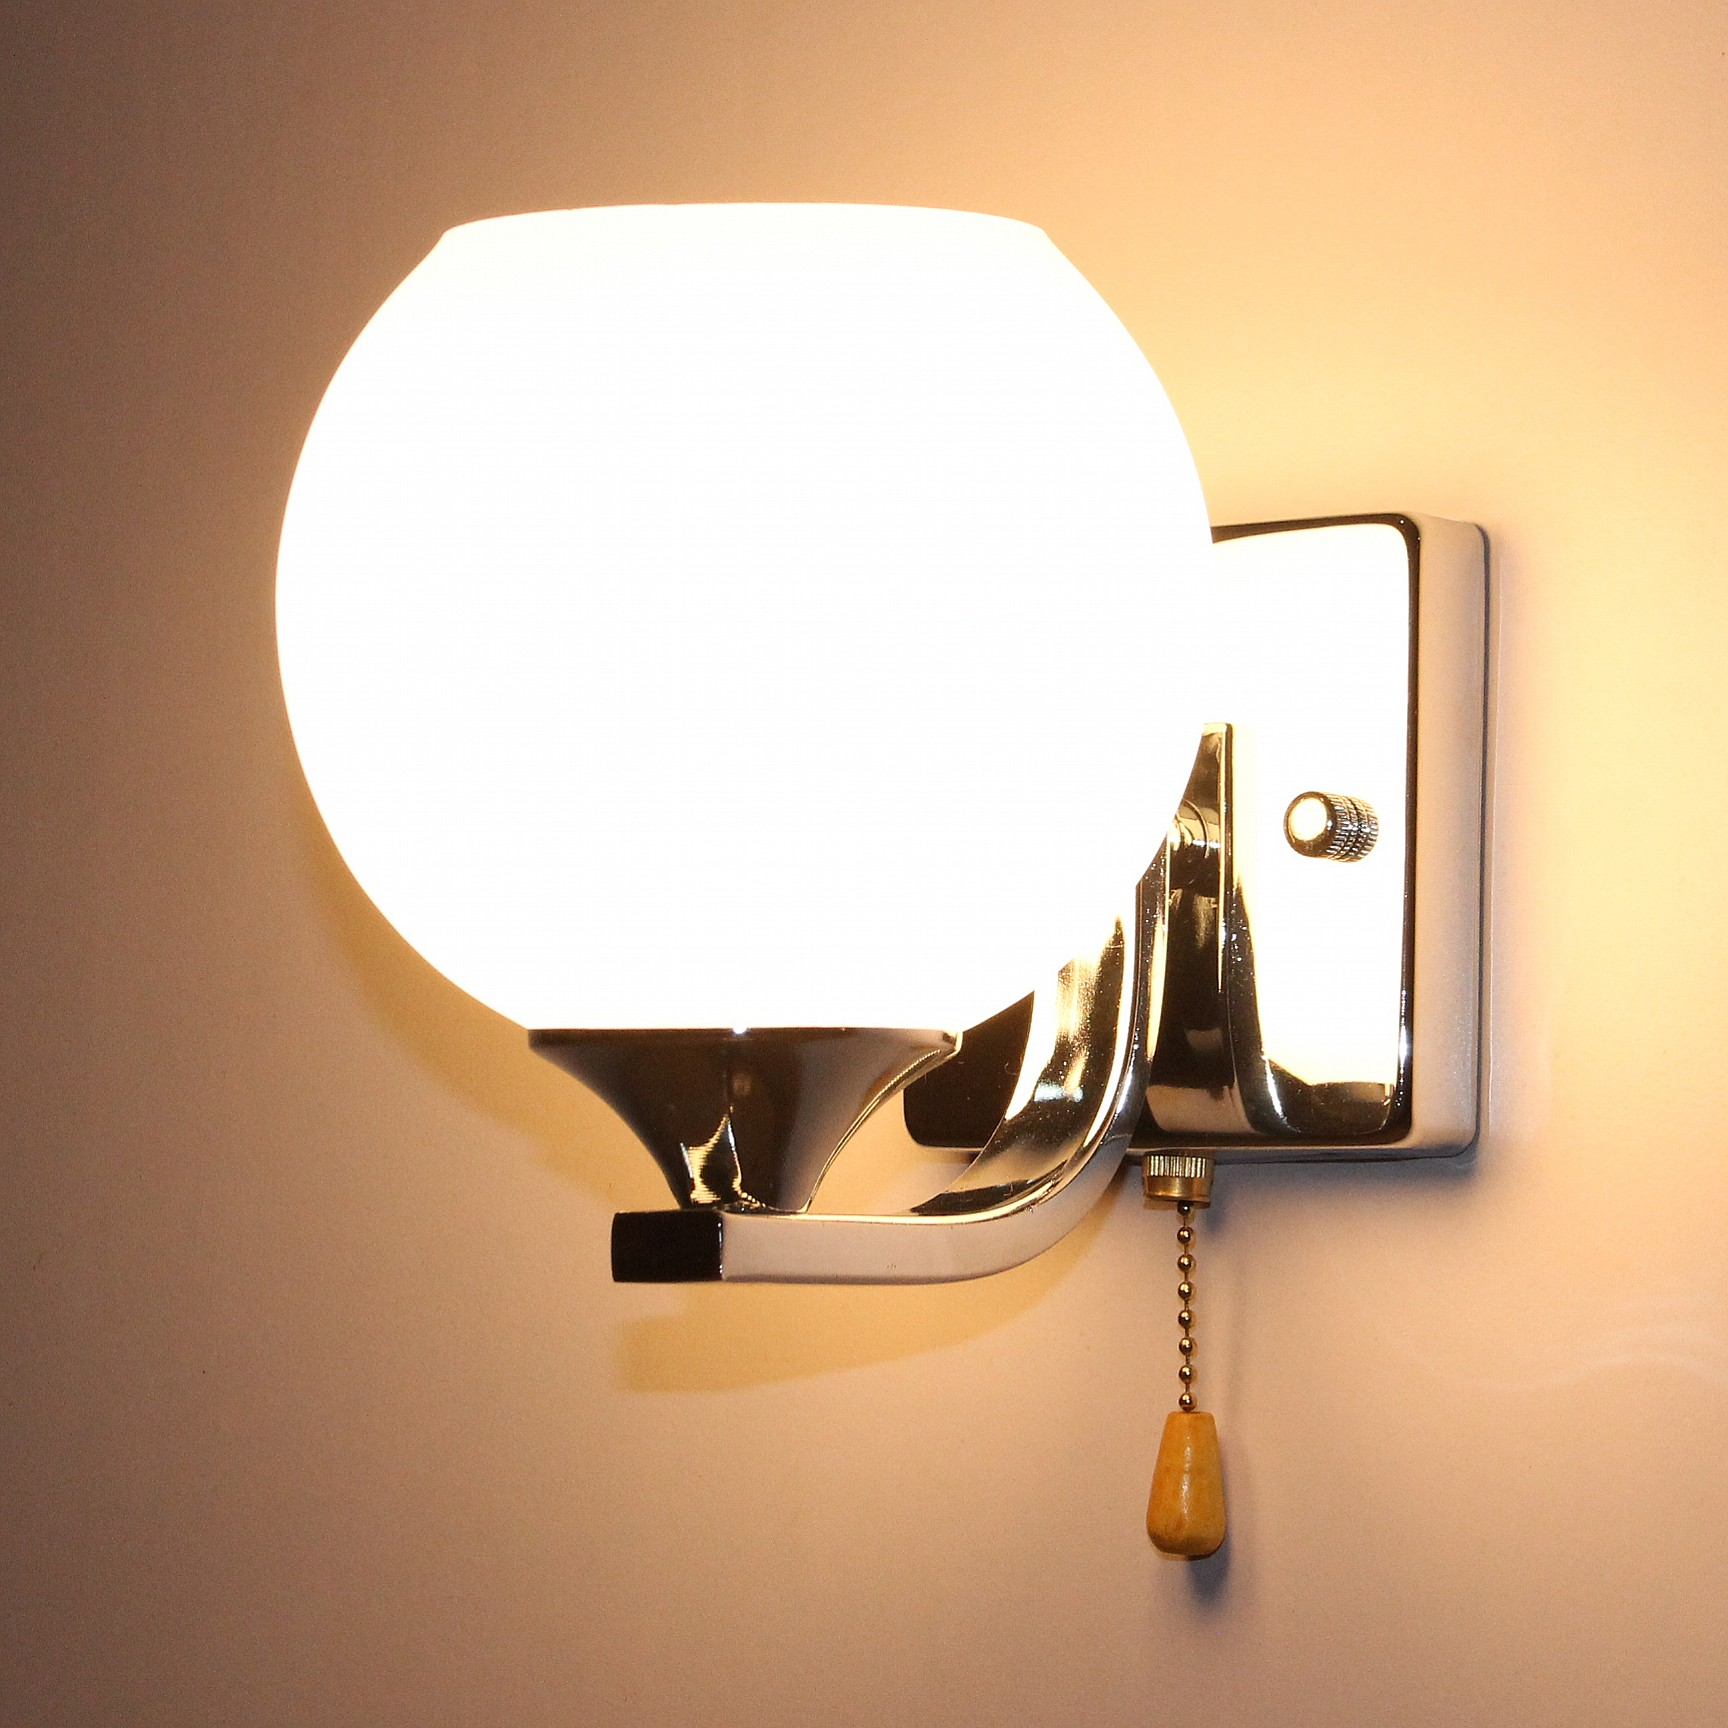 Get the STYLISH HOME and ROYAL LOOK with Wiring wall lights Warisan Lighting